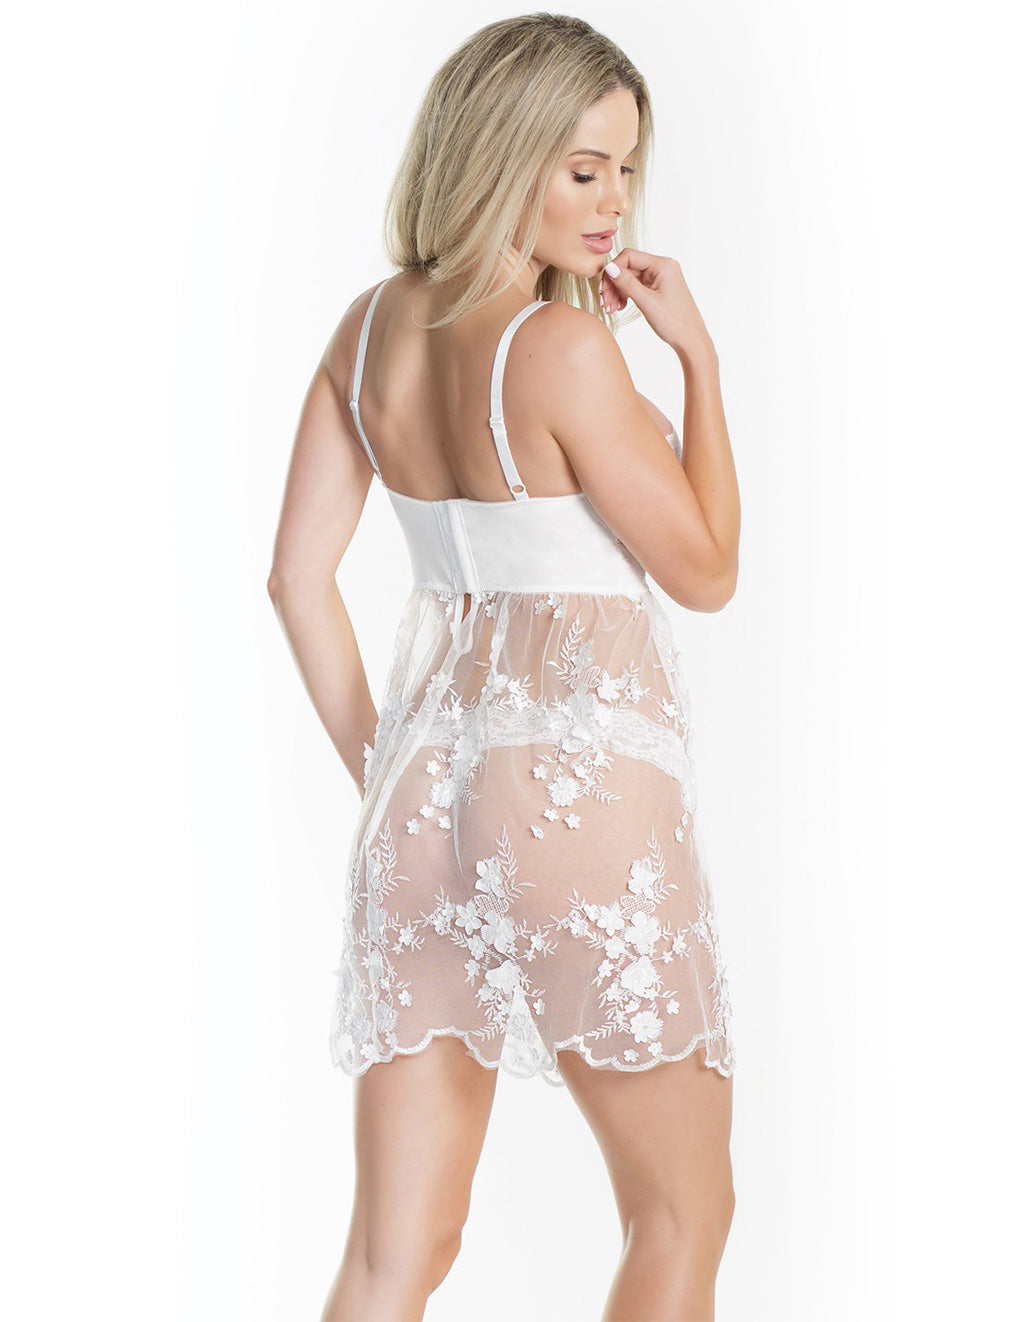 Sheer Tulle Babydoll with Floral Appliqué- Back